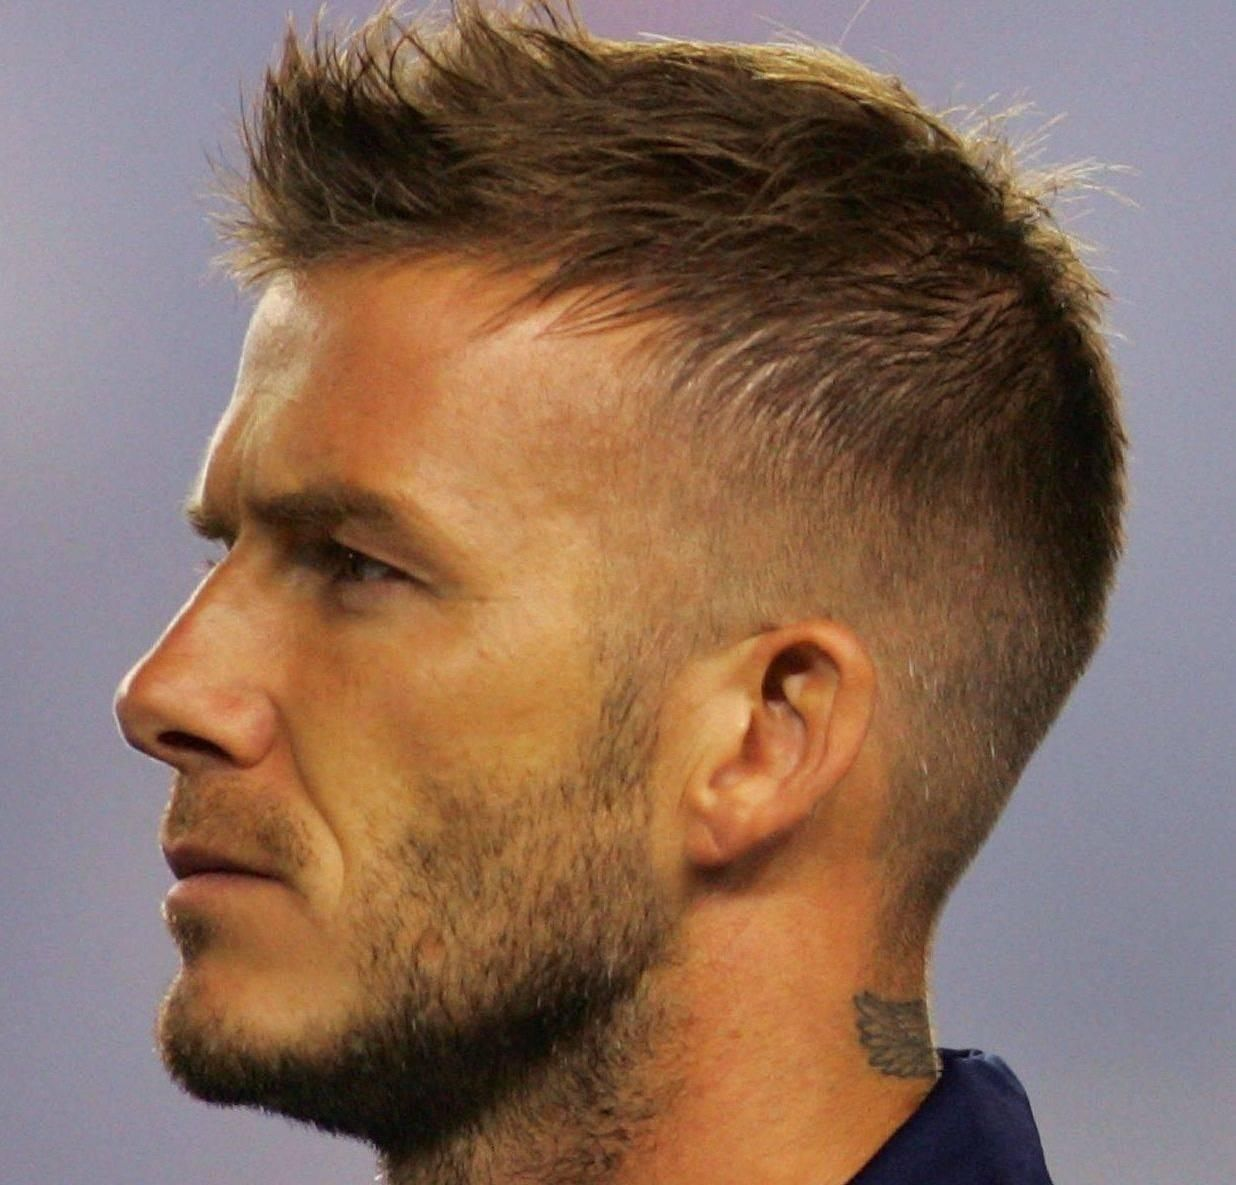 soccer haircuts: 15 best hairstyles for soccer players and